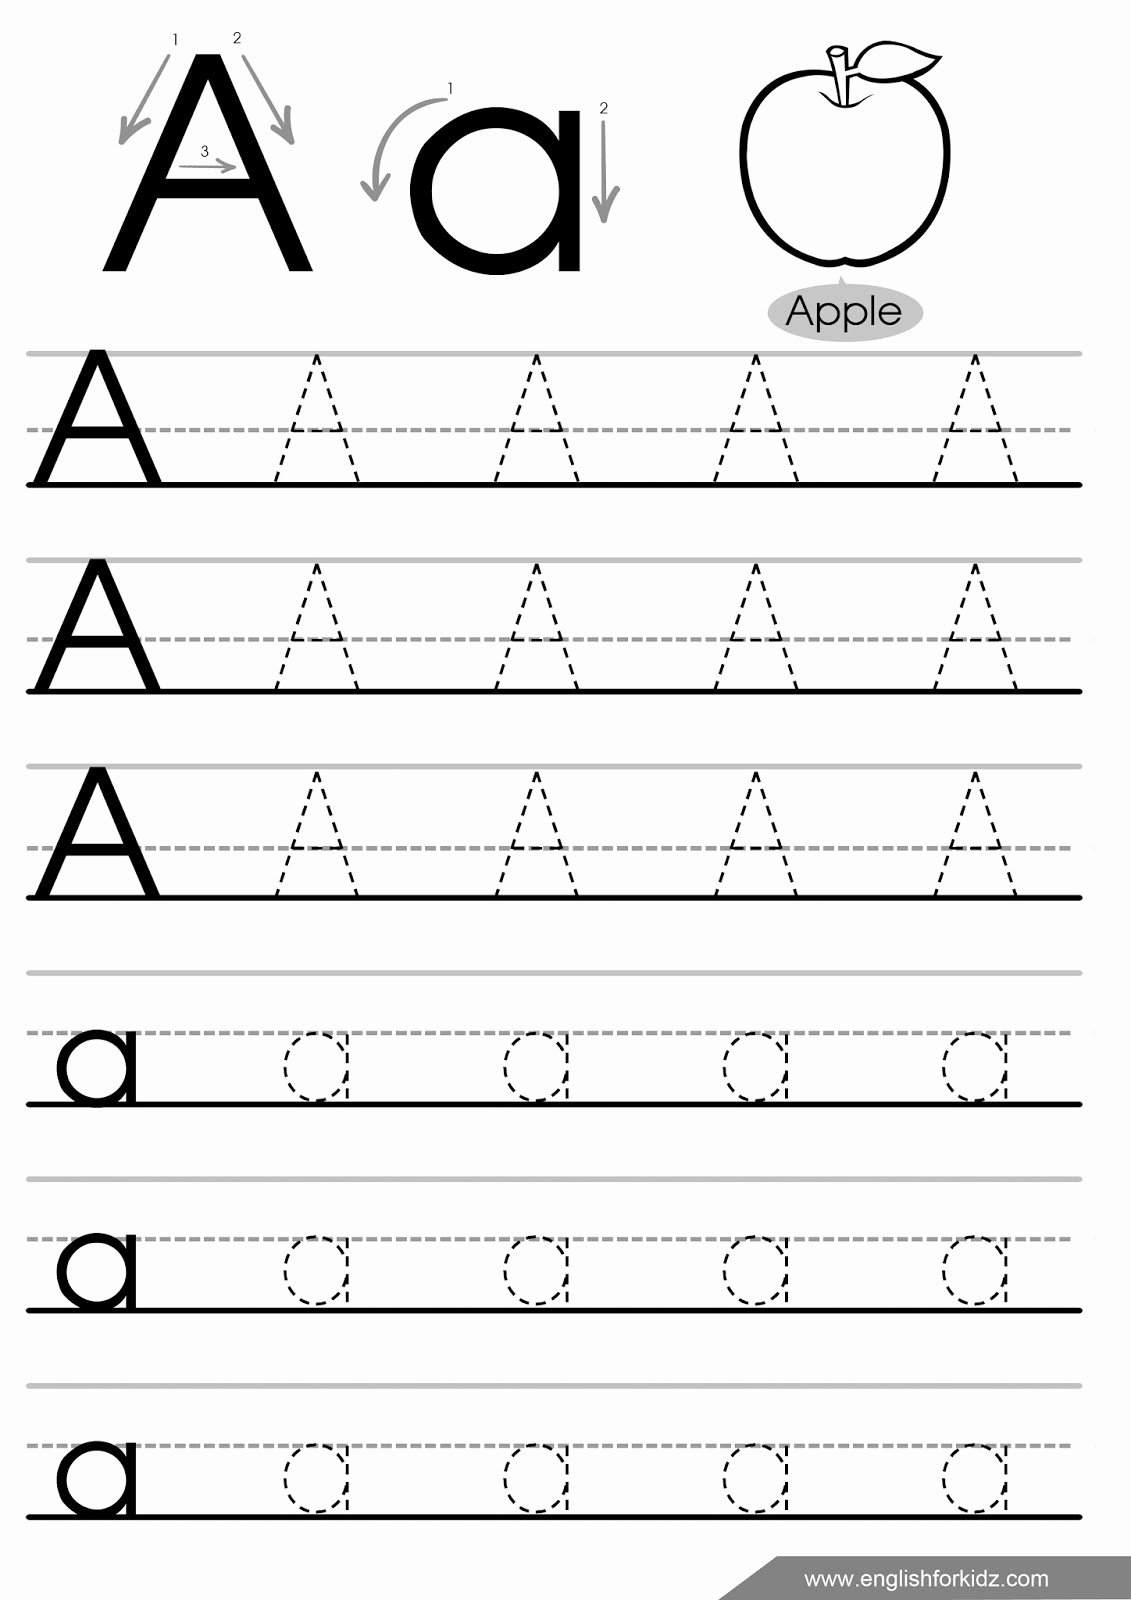 Alphabet Writing Worksheets for Preschoolers Inspirational Math Worksheet Alphabet Tracing Worksheets for